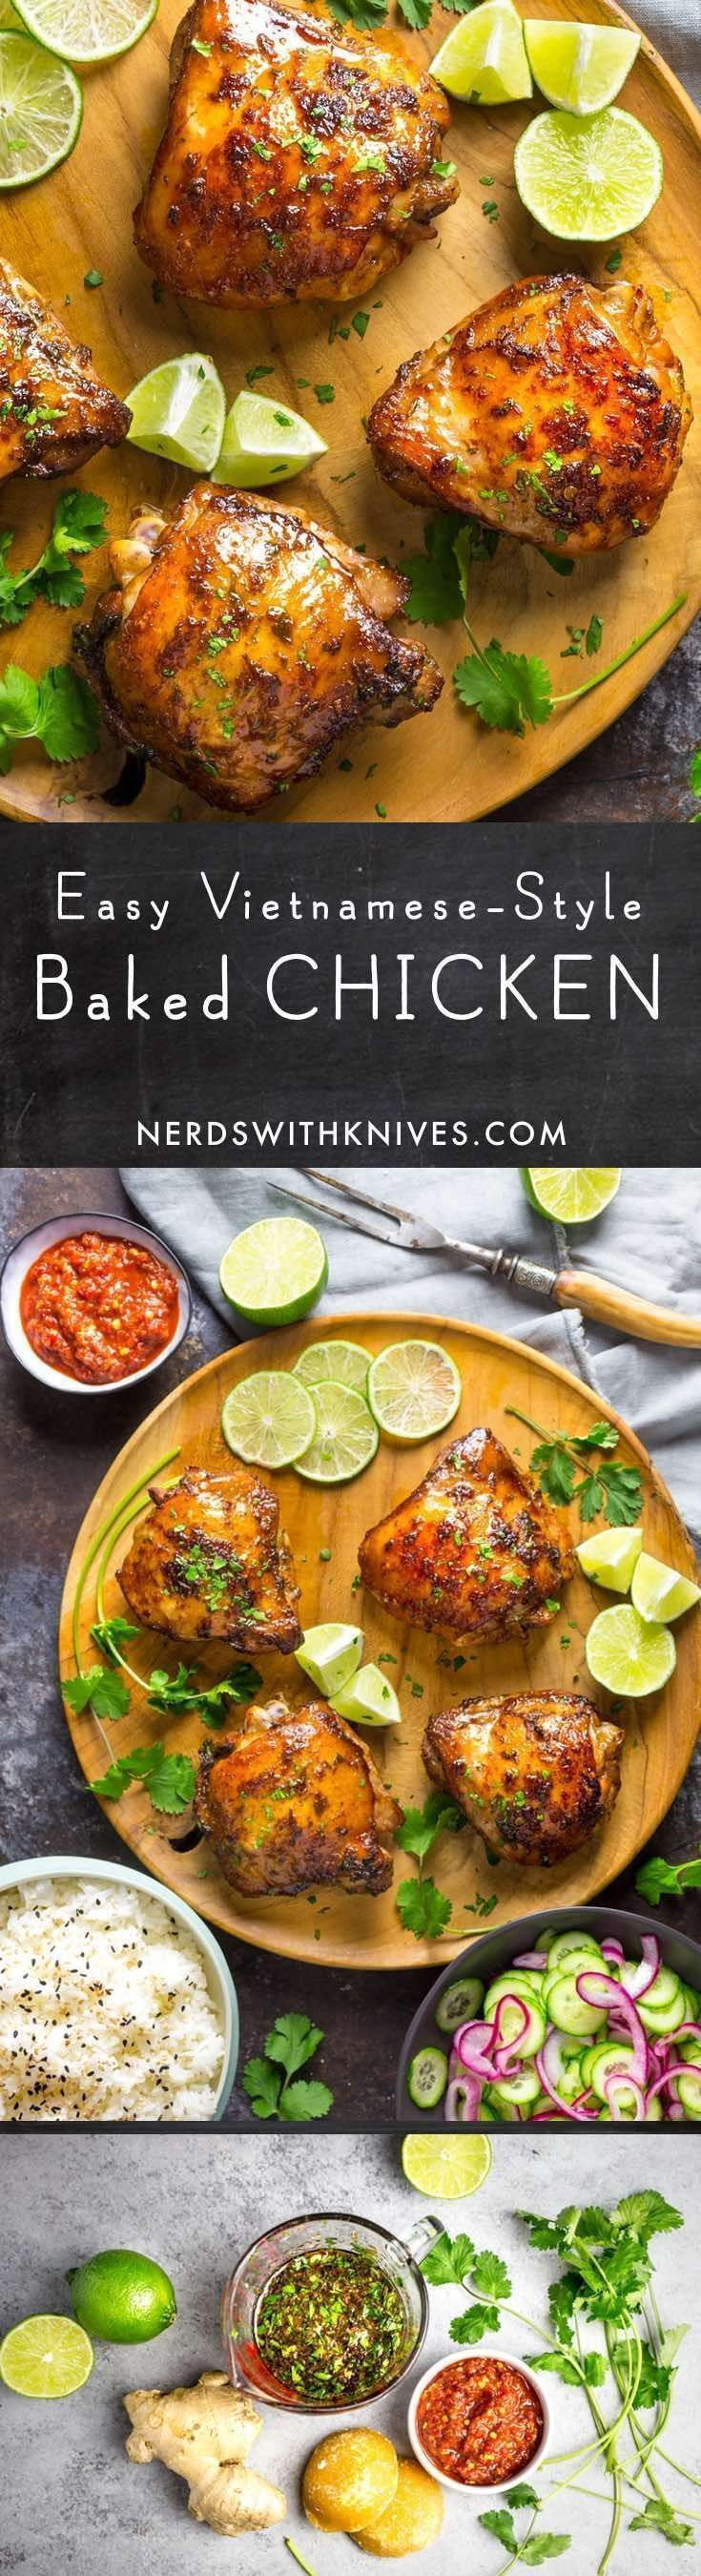 Tender, juicy with crisp golden skin, our easy Vietnamese baked chicken is marinated in fish sauce, sugar, herbs and lime juice.